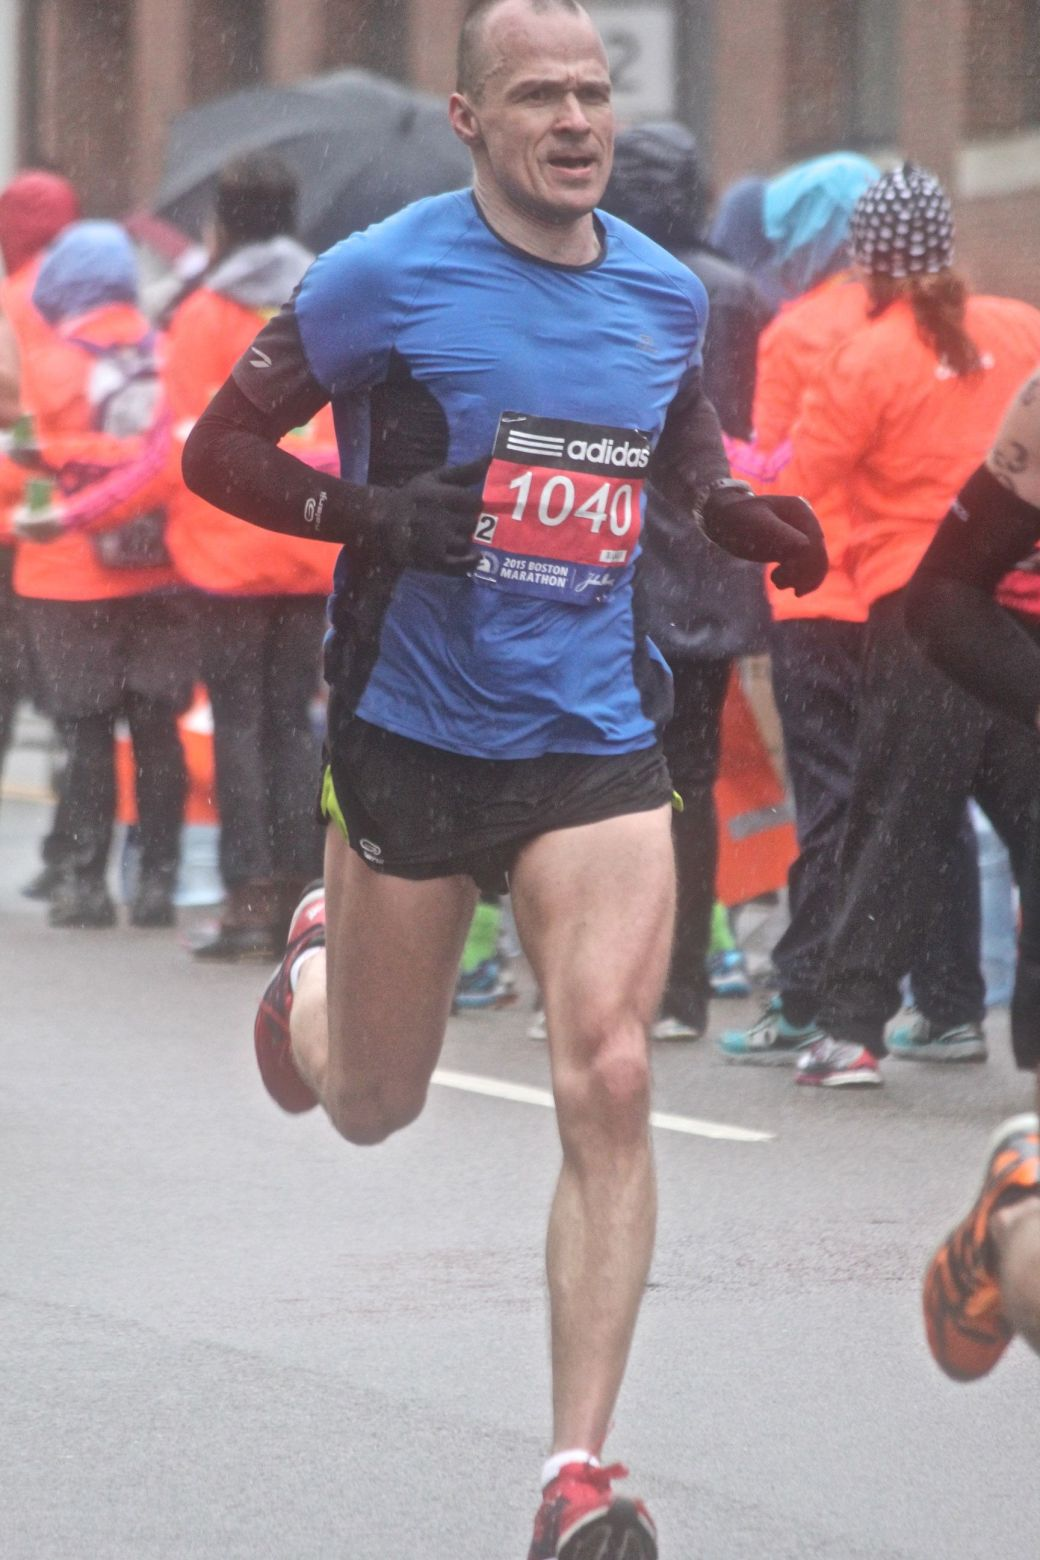 boston marathon april 20 2015 racer number 1040